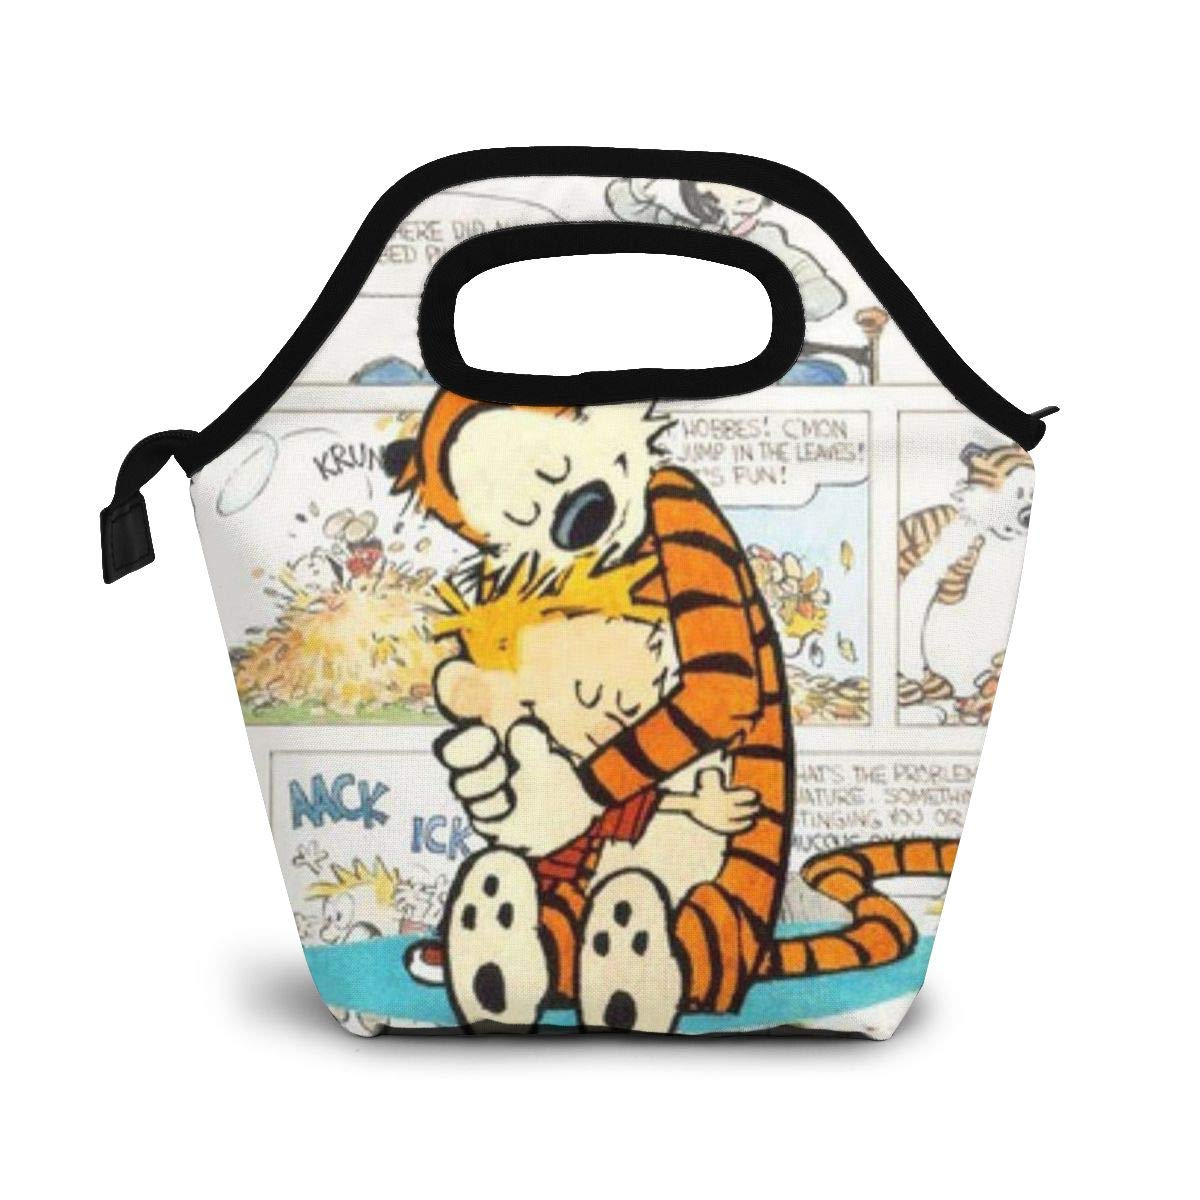 ZYRBsys Hope Tree Fashion Custom Calvin and Hobbes Waterproof Kids Insulated Lunch Portable Carry Tote Picnic Storage Bag Lunch Box Food Bag Handbag Cooler Warm Pouch Tote Bag for School Work Office